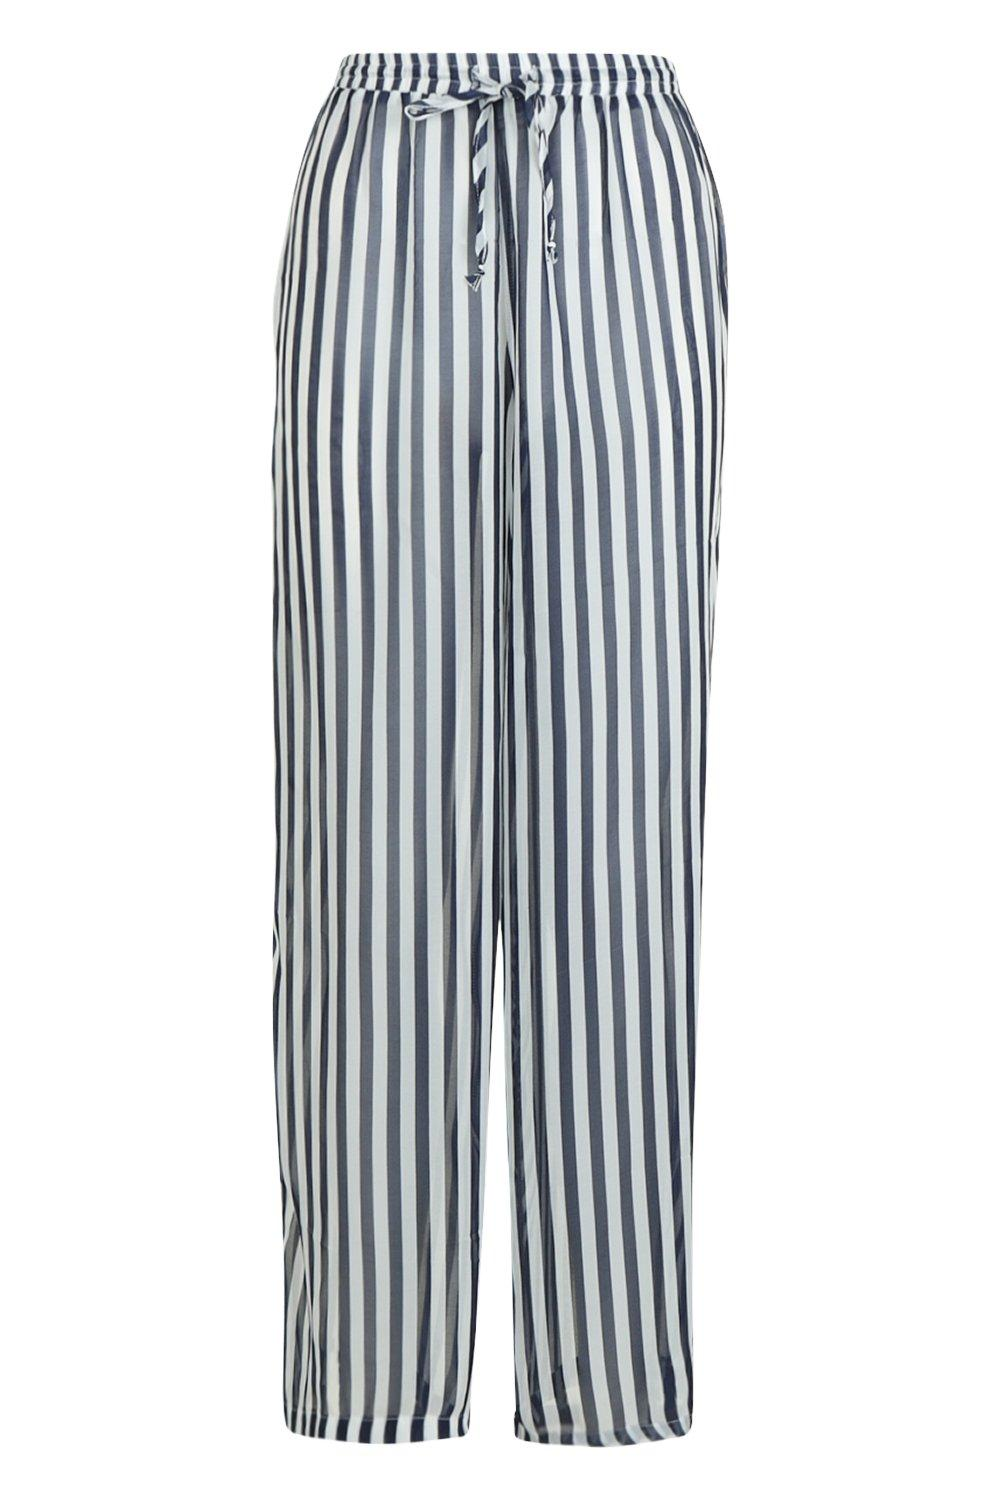 Beach navy Trouser Stripe Stripe Beach Trouser 5wnqf0z